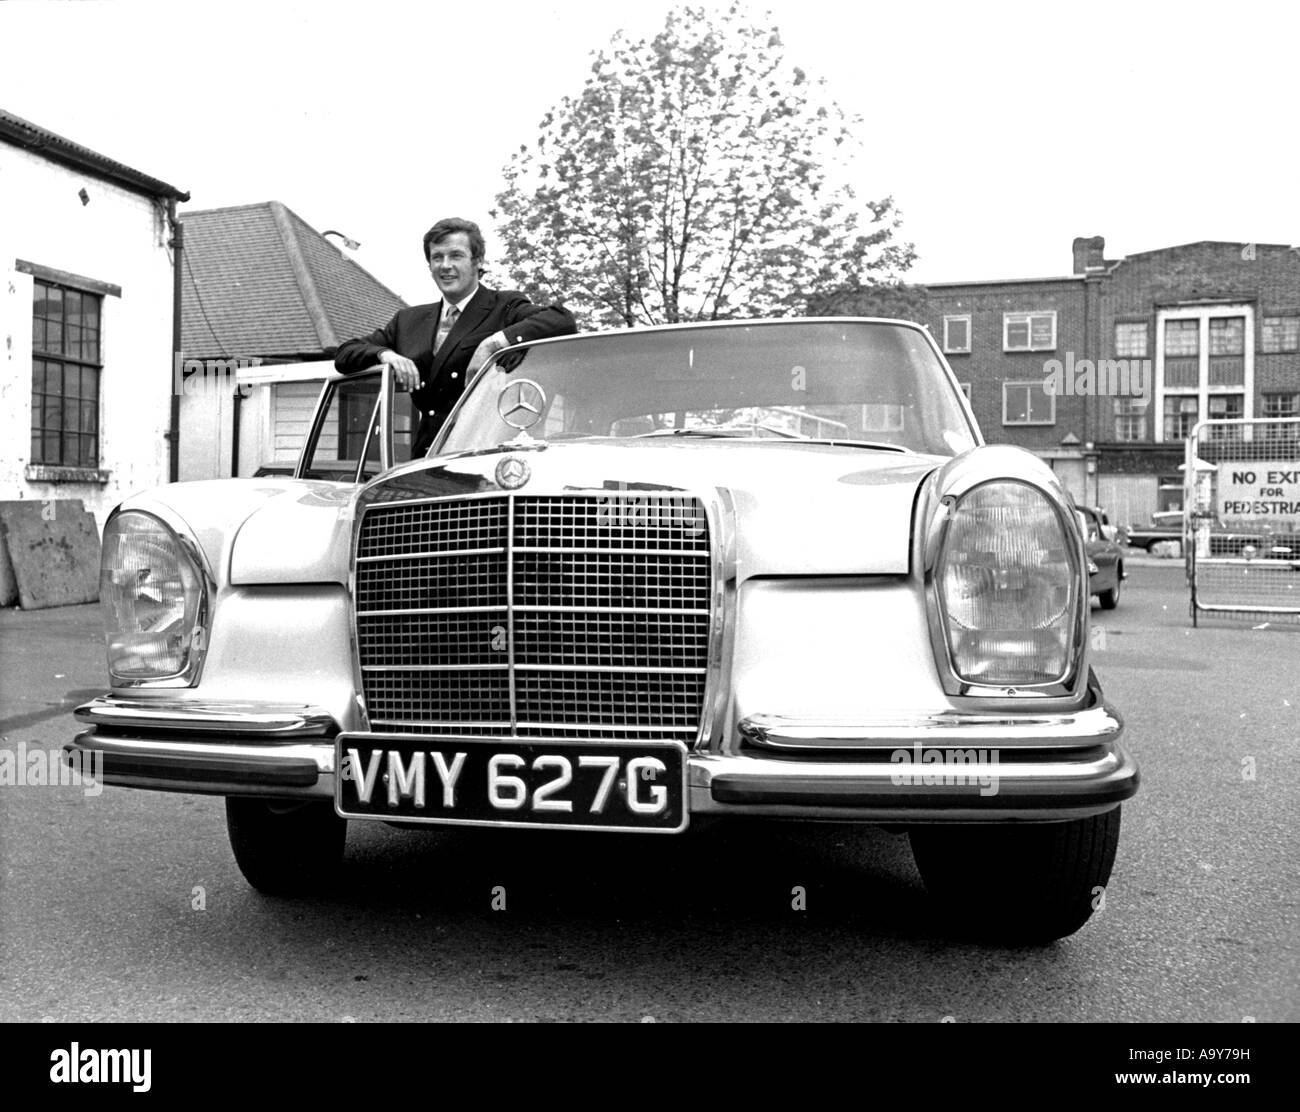 ROGER MOORE with his Mercedes at Elstree Studios, north London, while filming The Saint TV series about 1963 - Stock Image